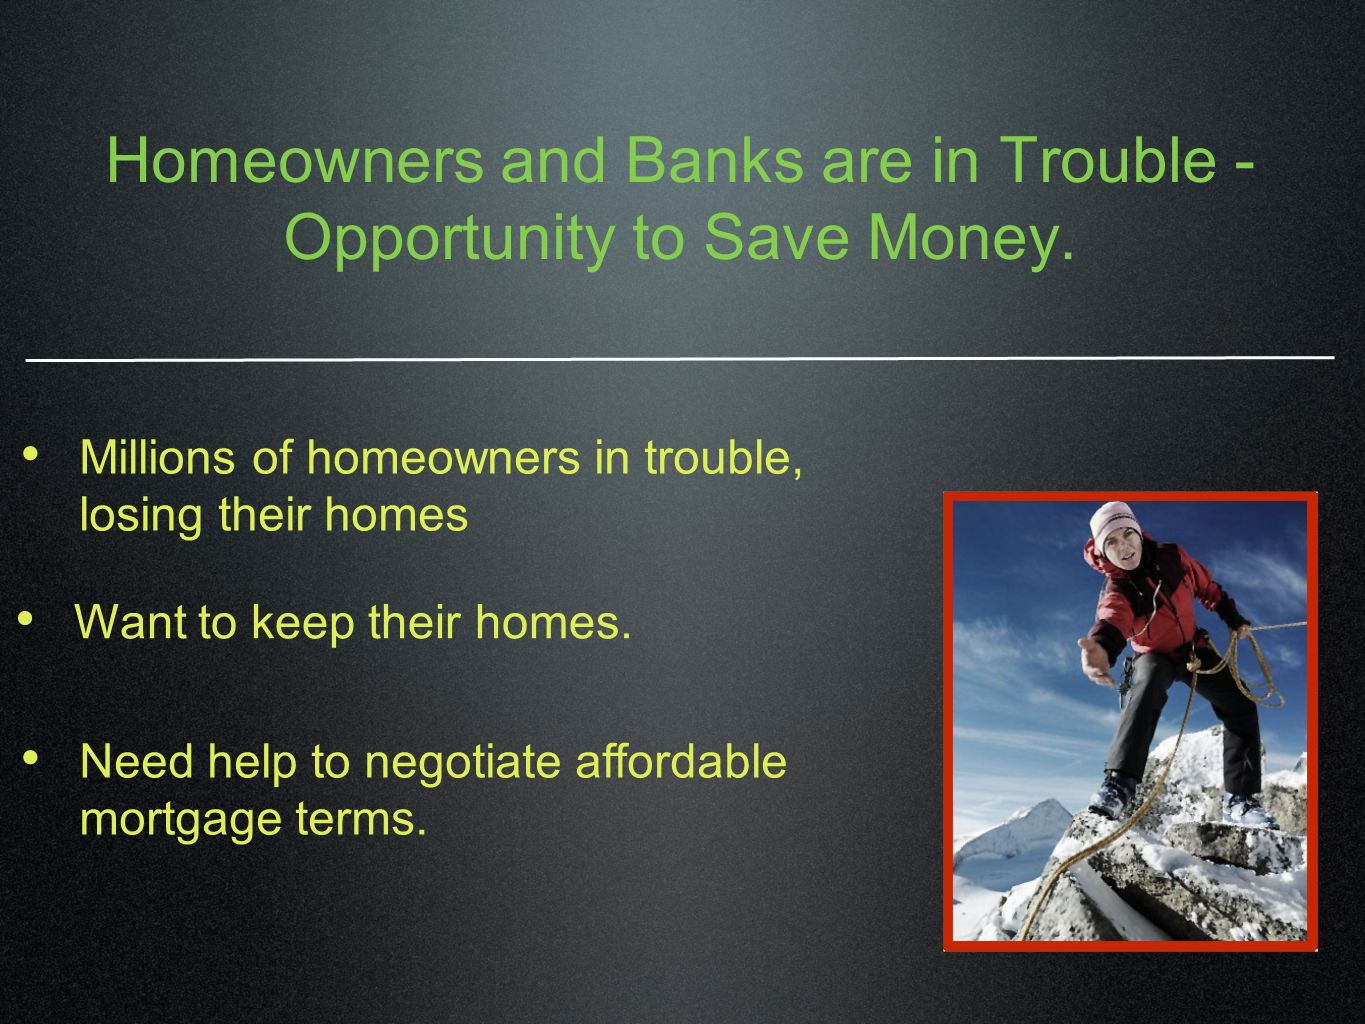 Homeowners and Banks are in Trouble - Opportunity to Save Money.